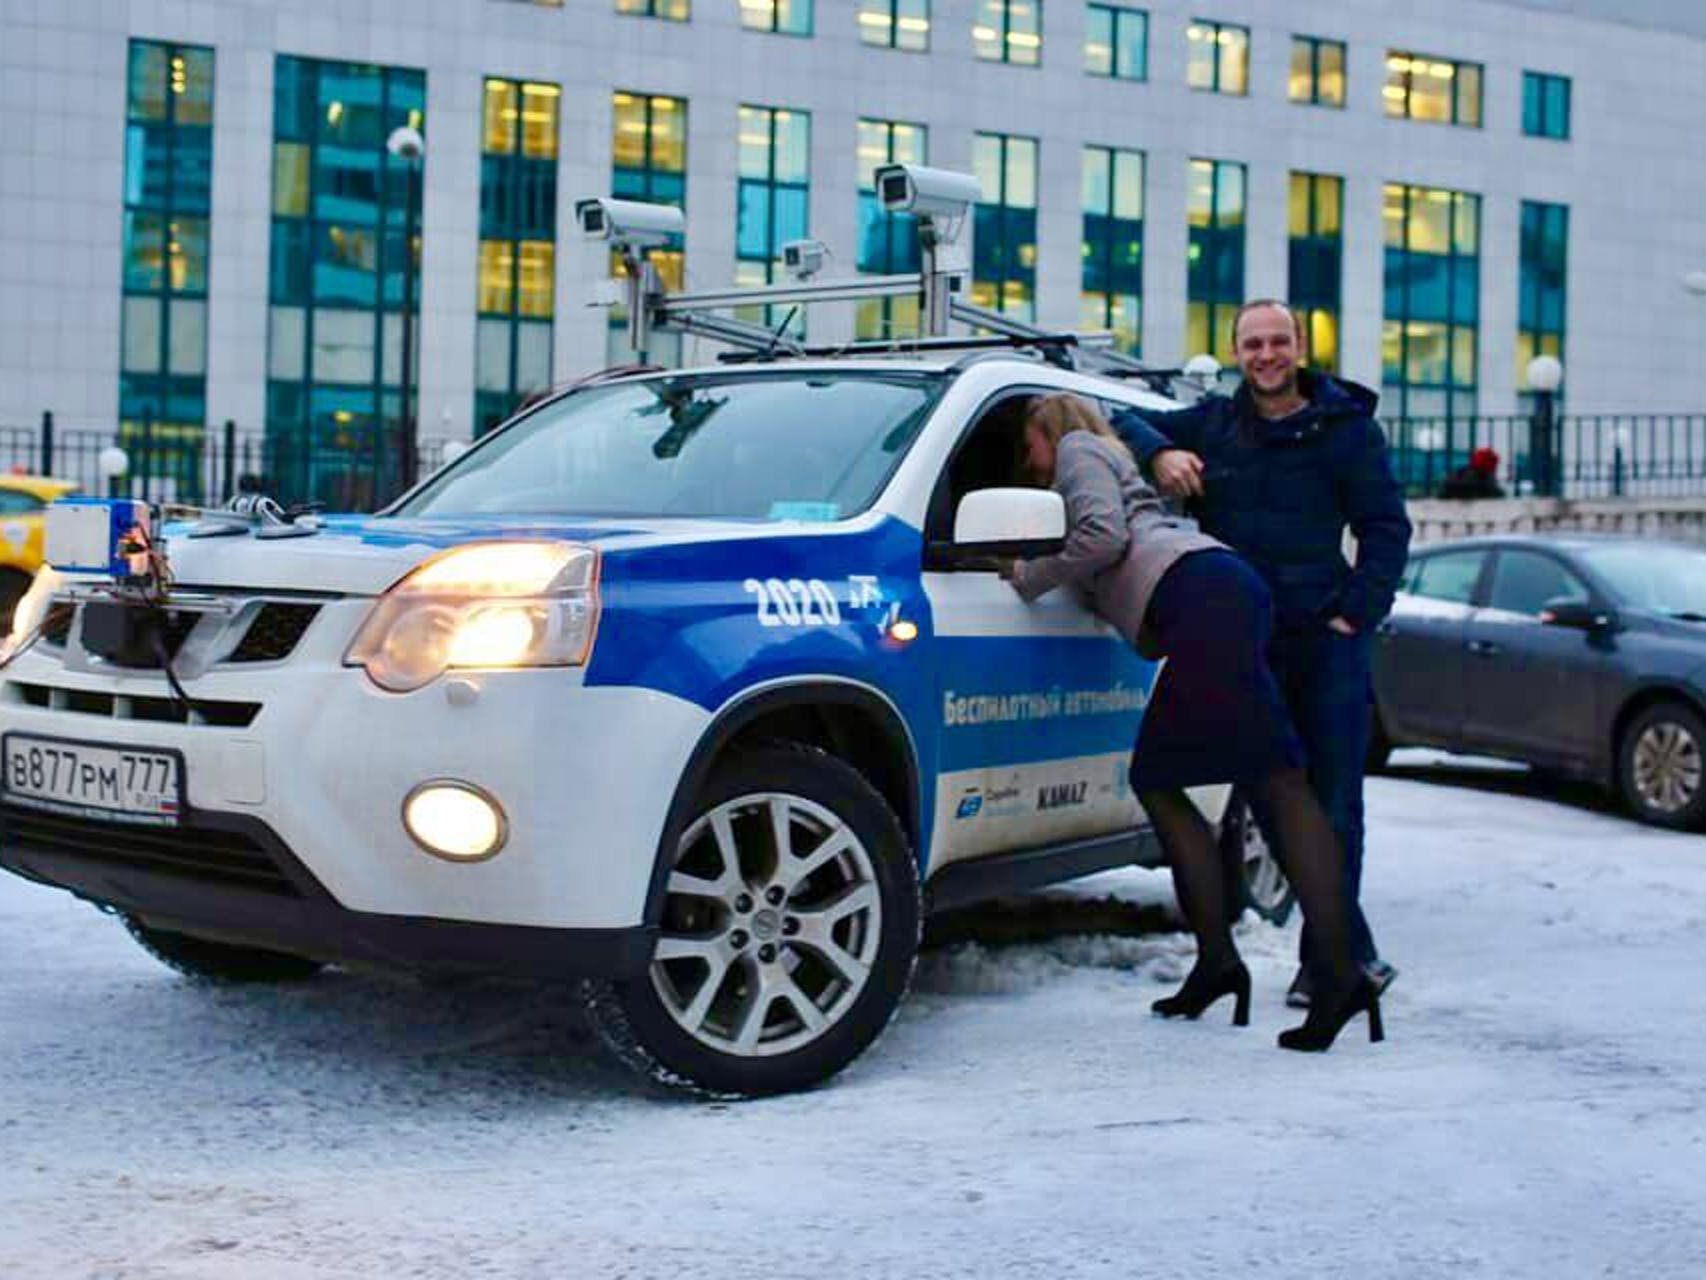 CES 2018: Russia's Biggest Self-Driving Car Project Set to Make